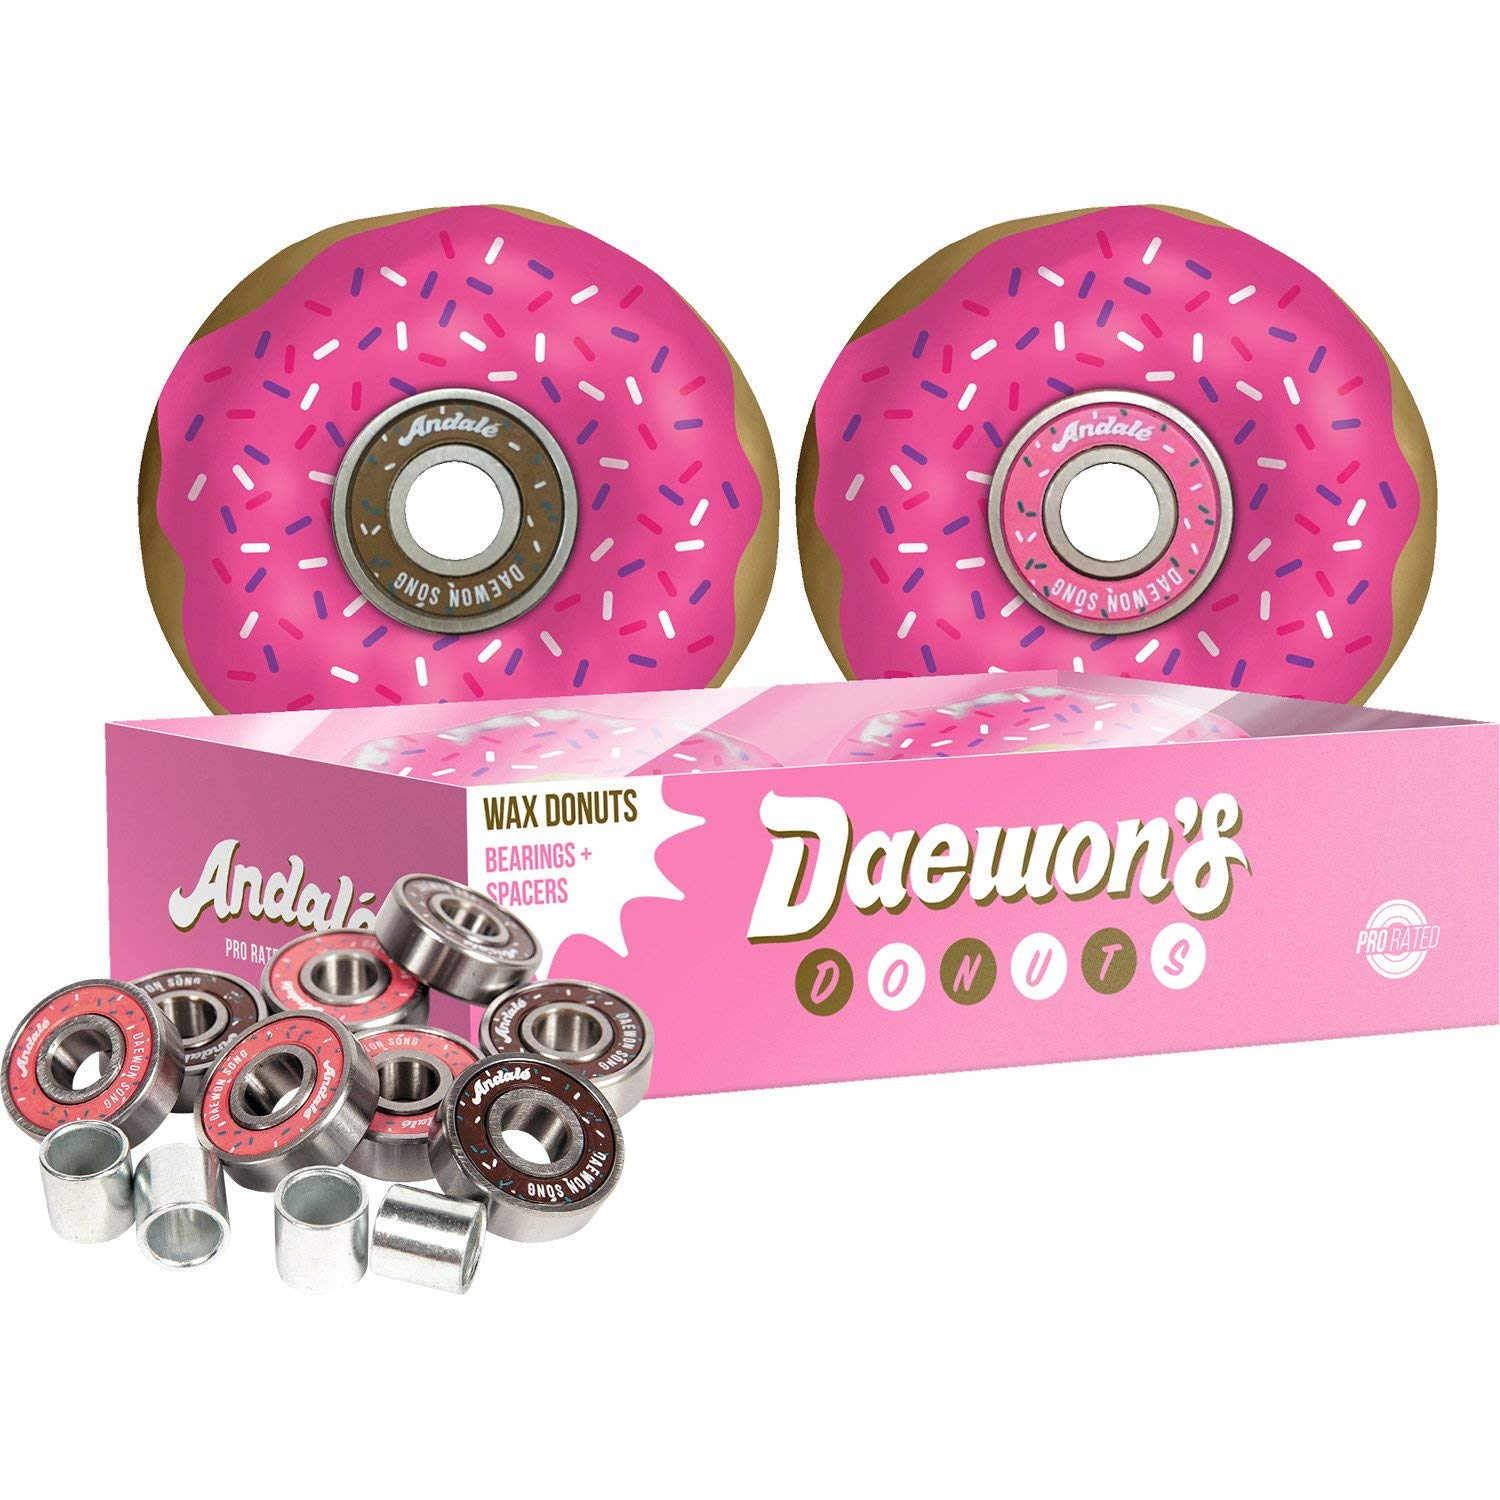 Andale Bearings 8mm Daewon's Donut Box Pro Rated Precision Includes Free Wax with Spacers